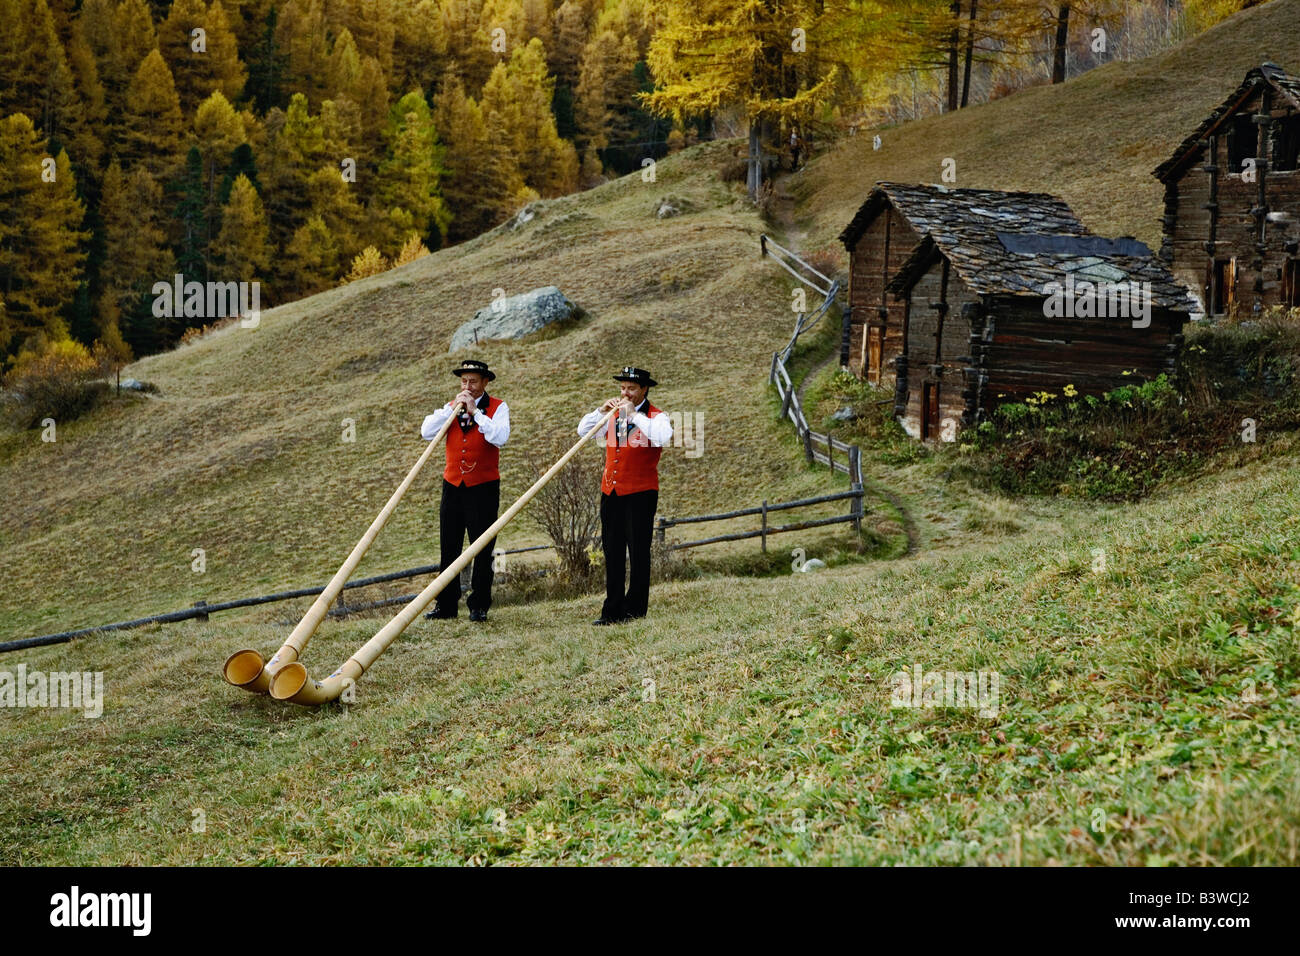 Father and son Alp Horn players and autumn Larch trees, Zermatt, Switzerland. - Stock Image